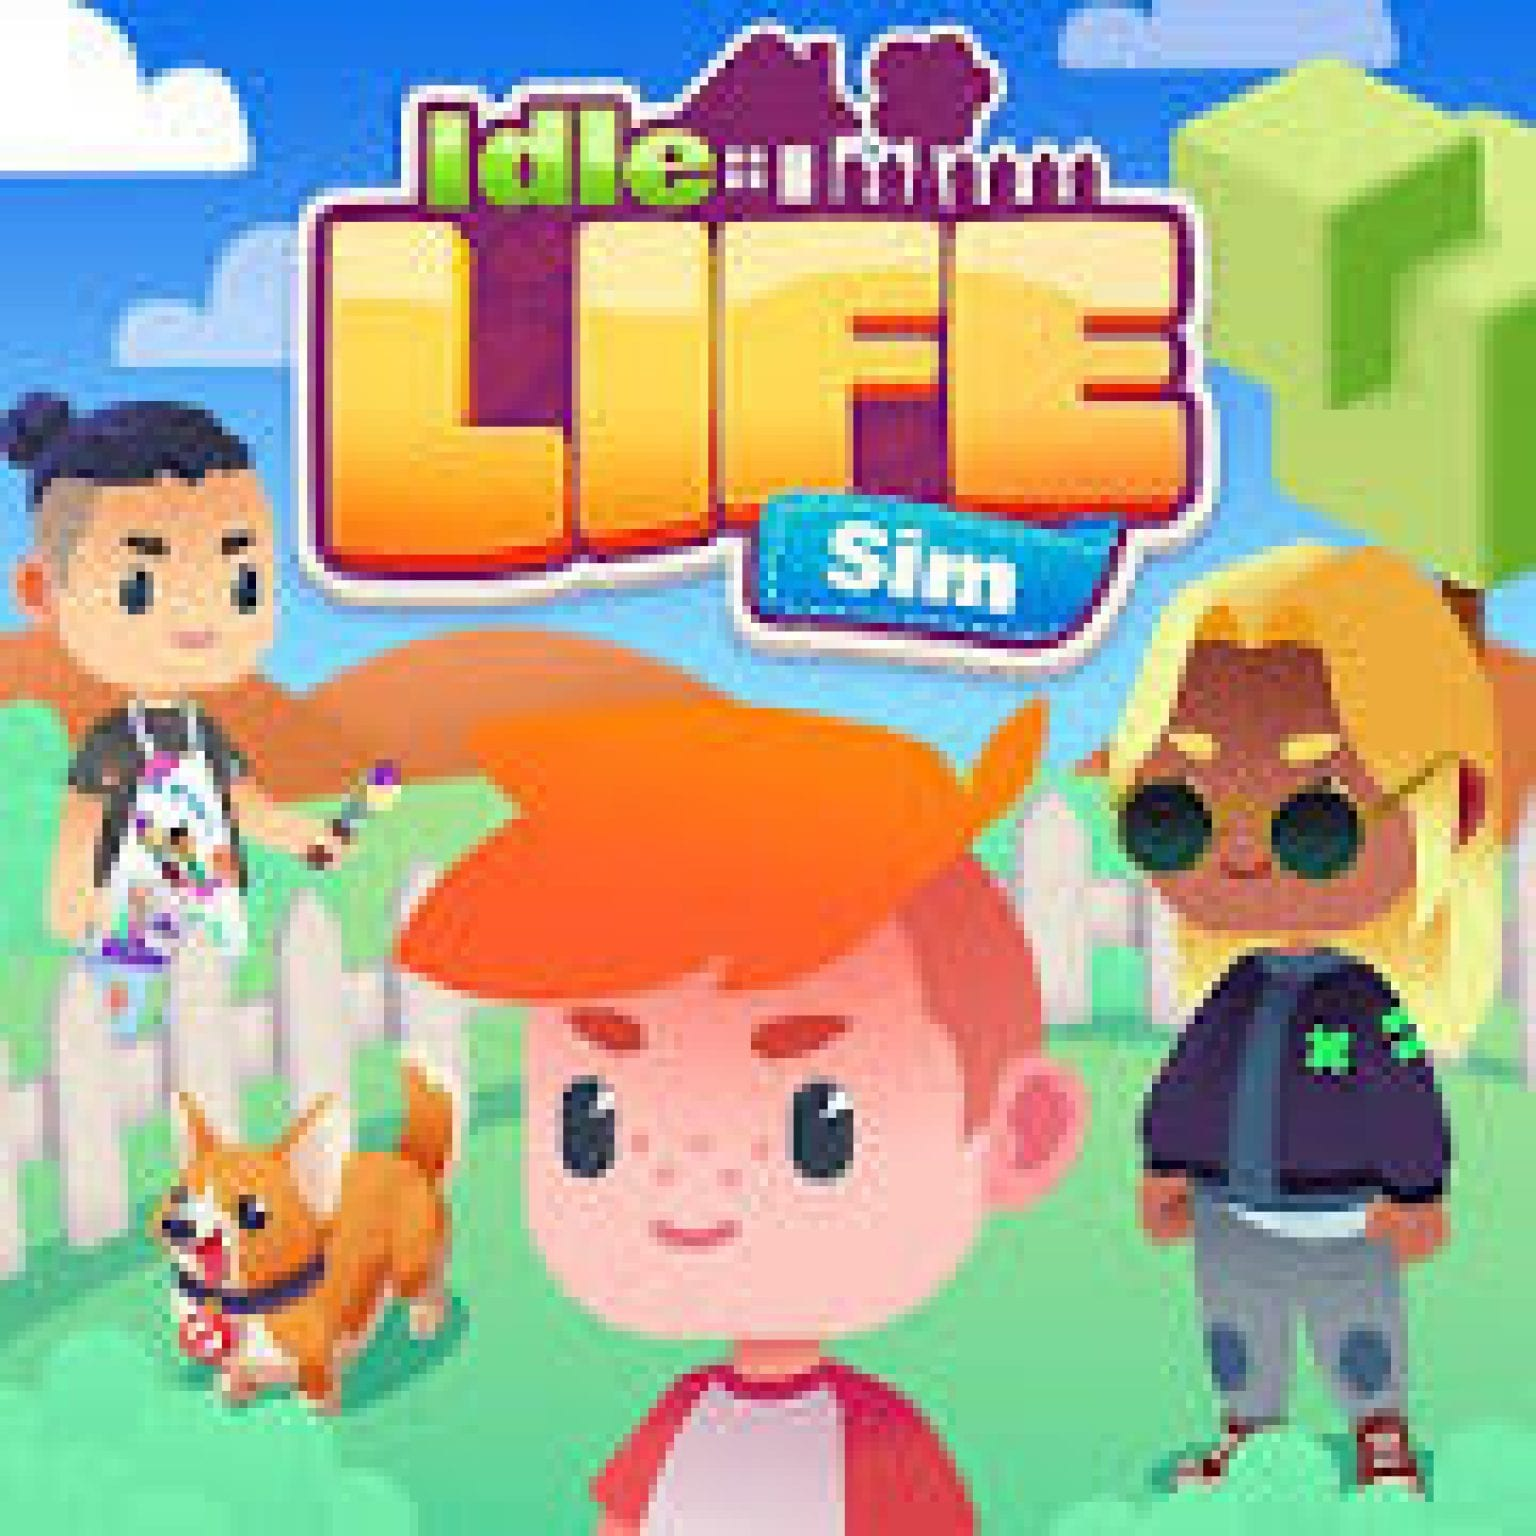 9 Cool Life Simulation Games Like Bitlife | Free apps for ...